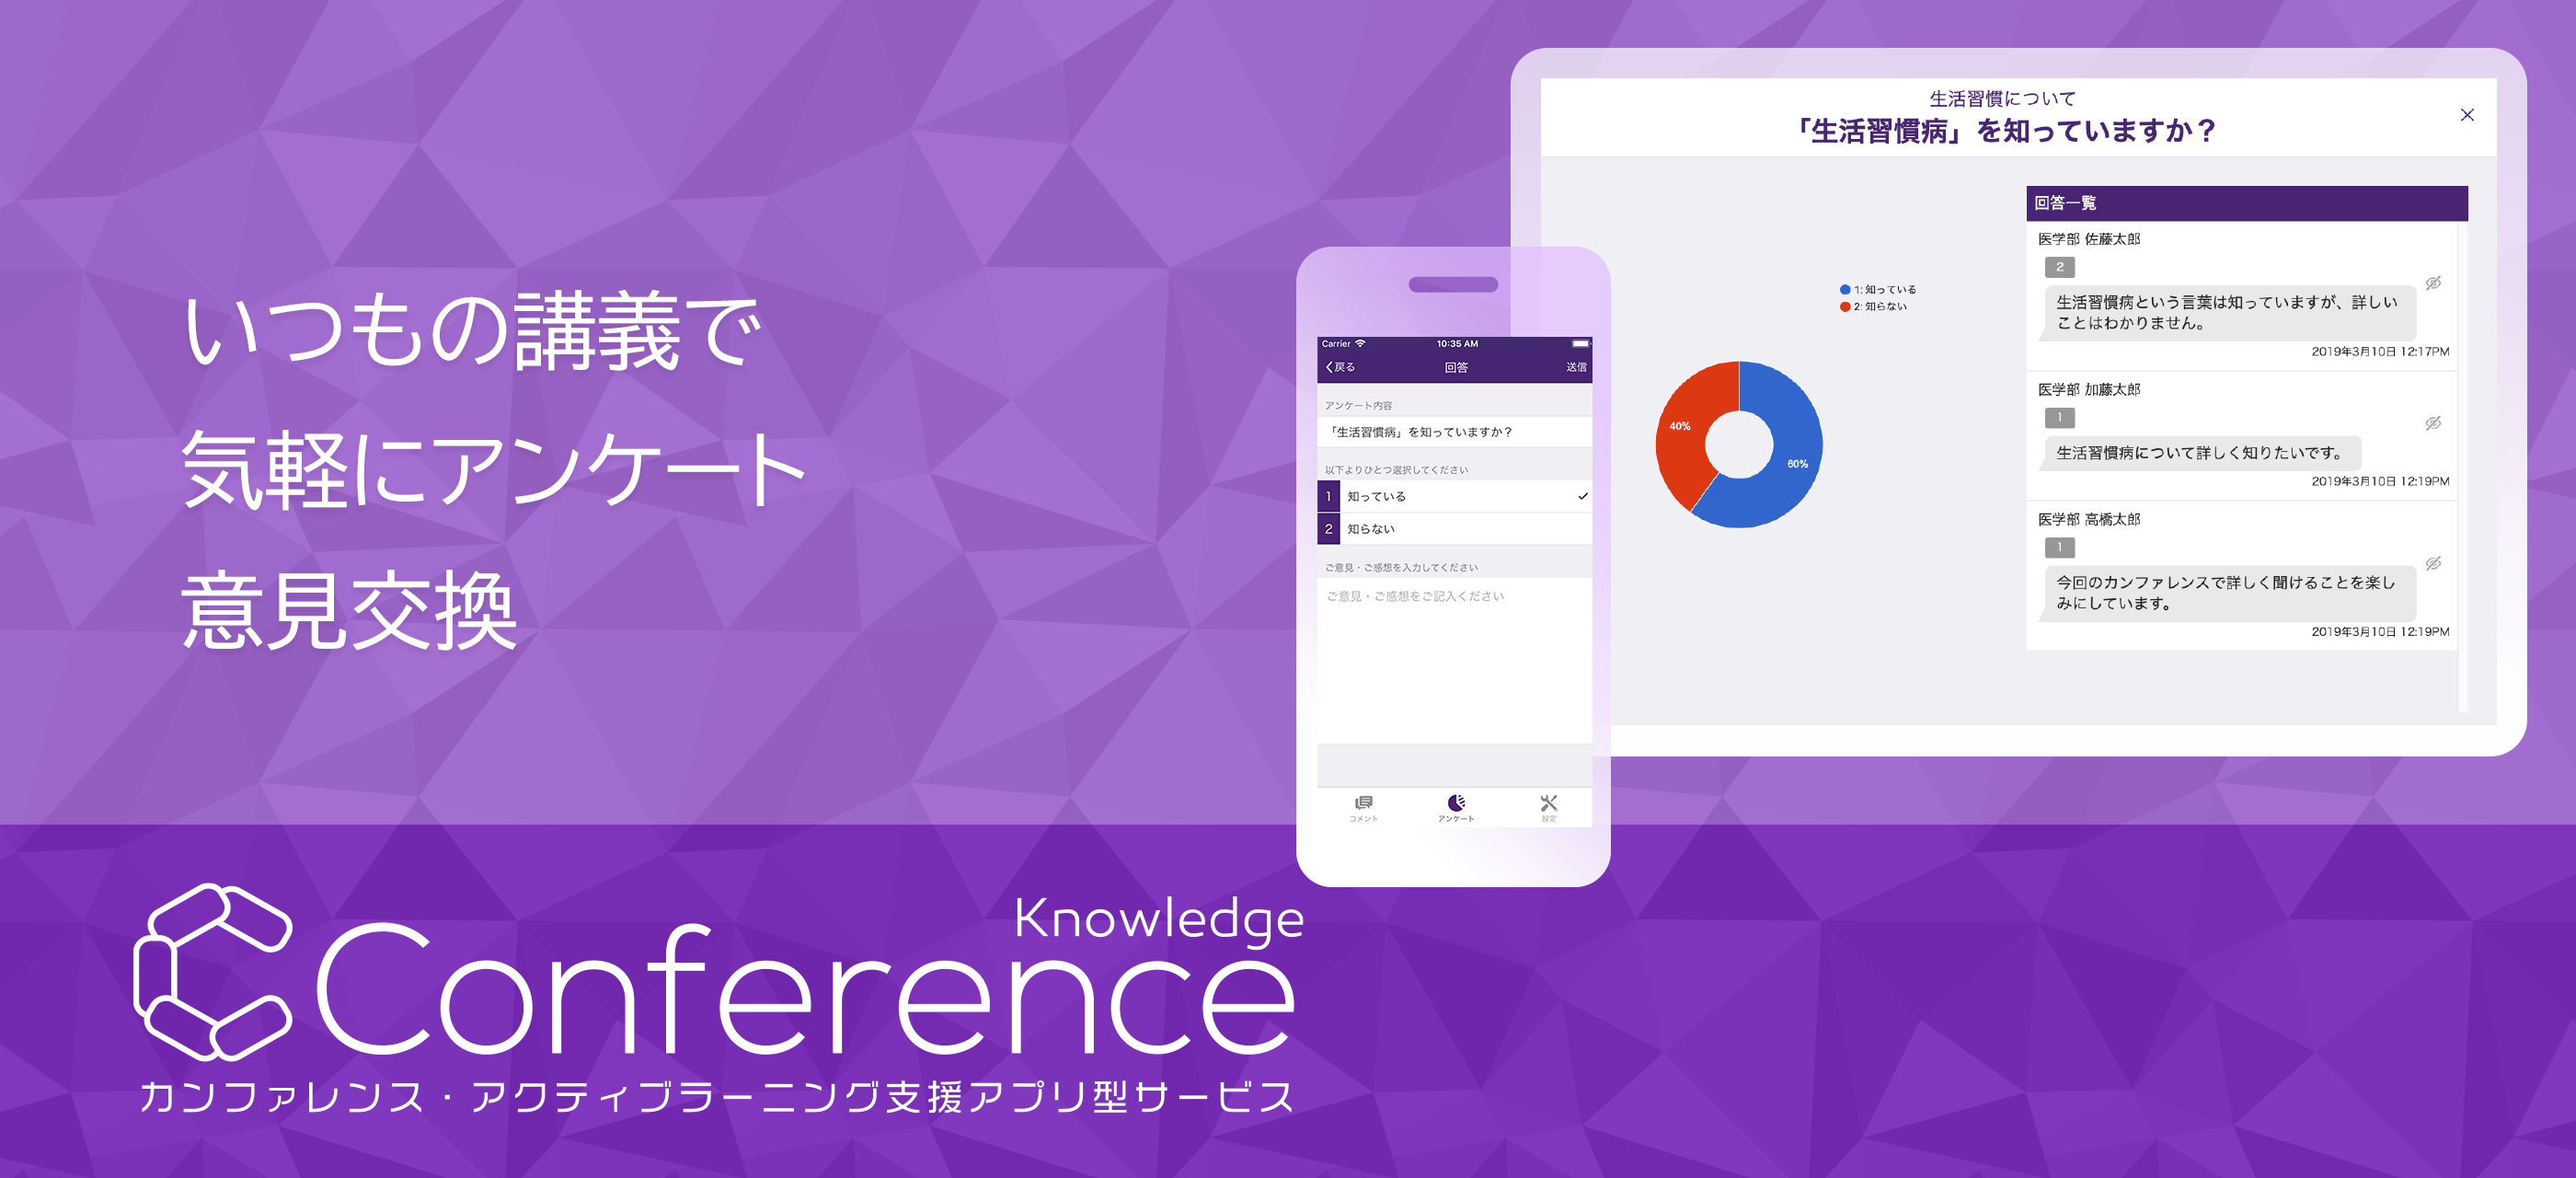 KnowledgeConference